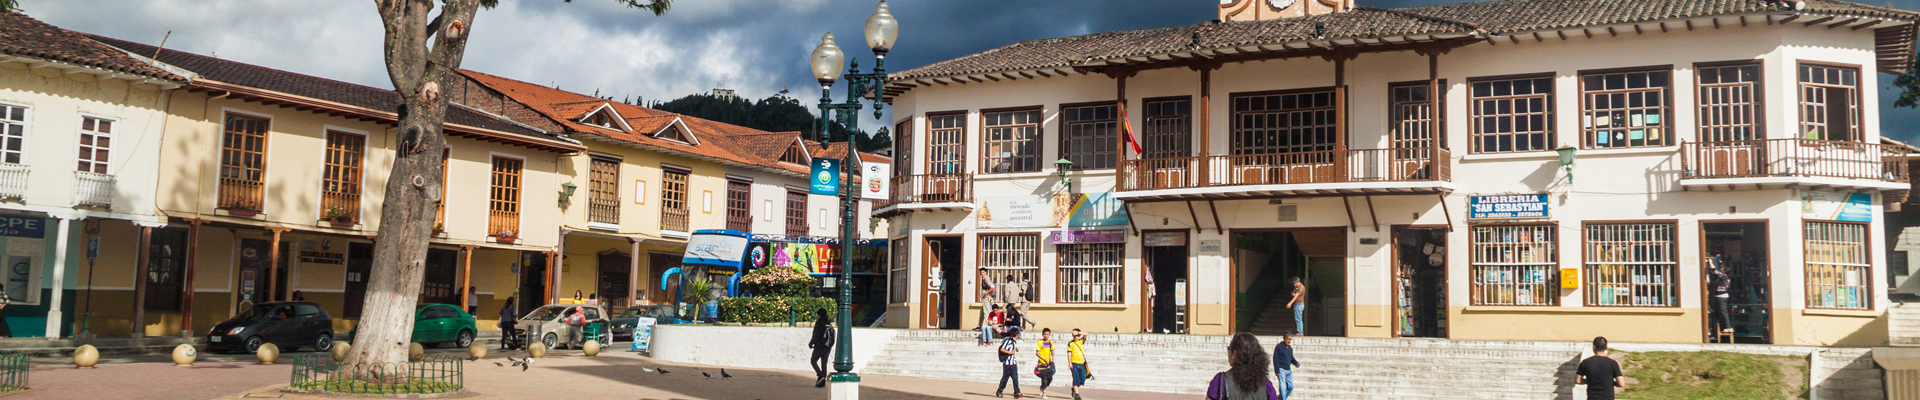 Plaza de la Independencia in Loja, Ecuador